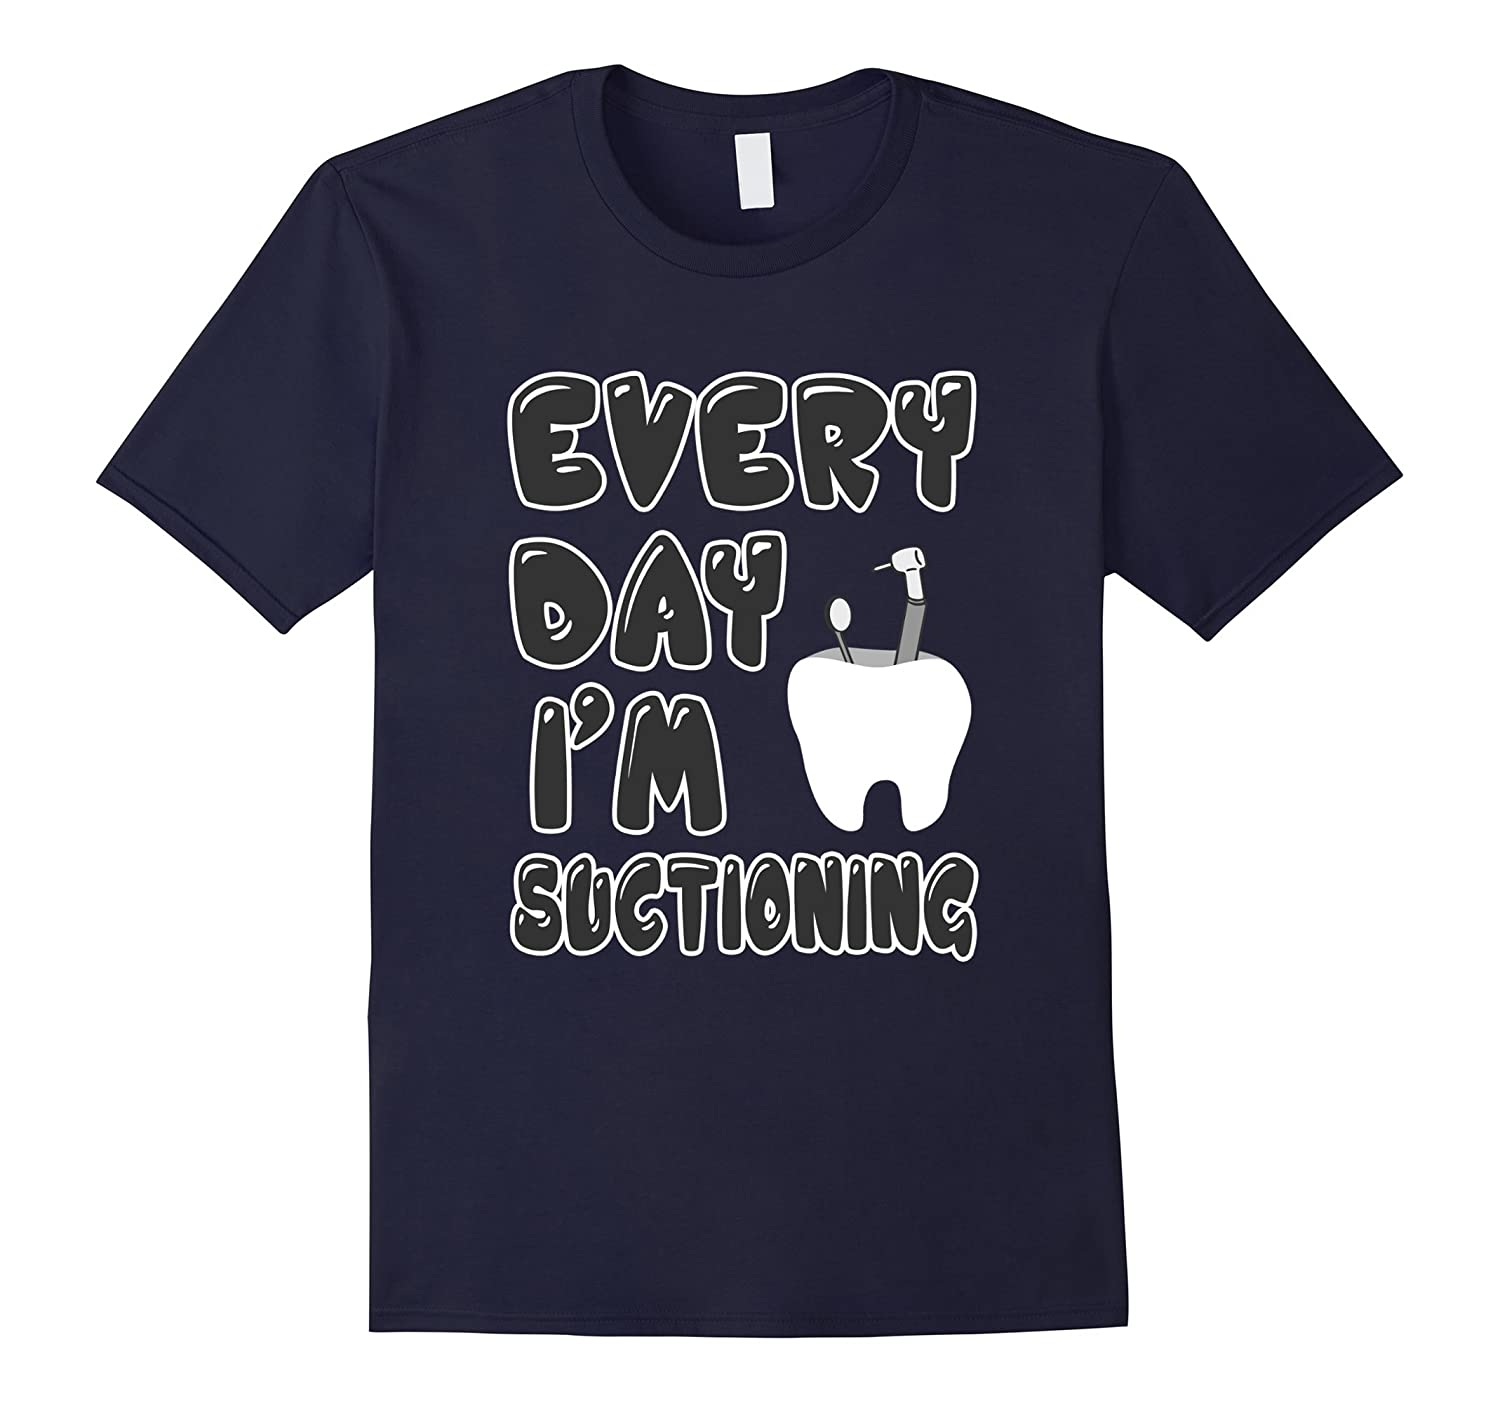 Every Day Im Suctioning T-shirt Dentist Dental Assistant-TD